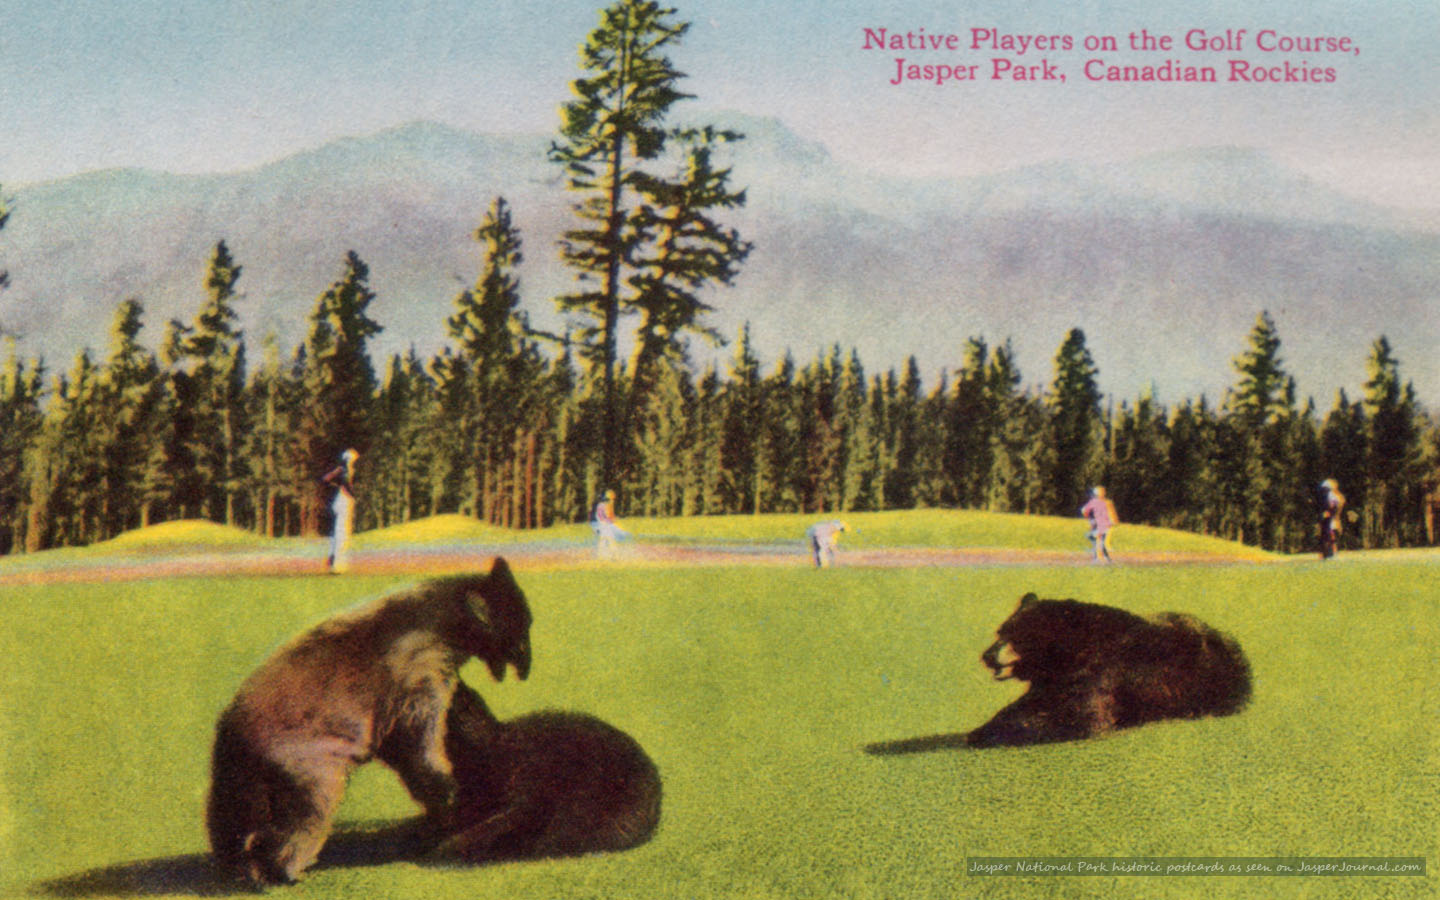 Jasper National Park Photo Bears on the Golf Course   DH Walls 1440x900